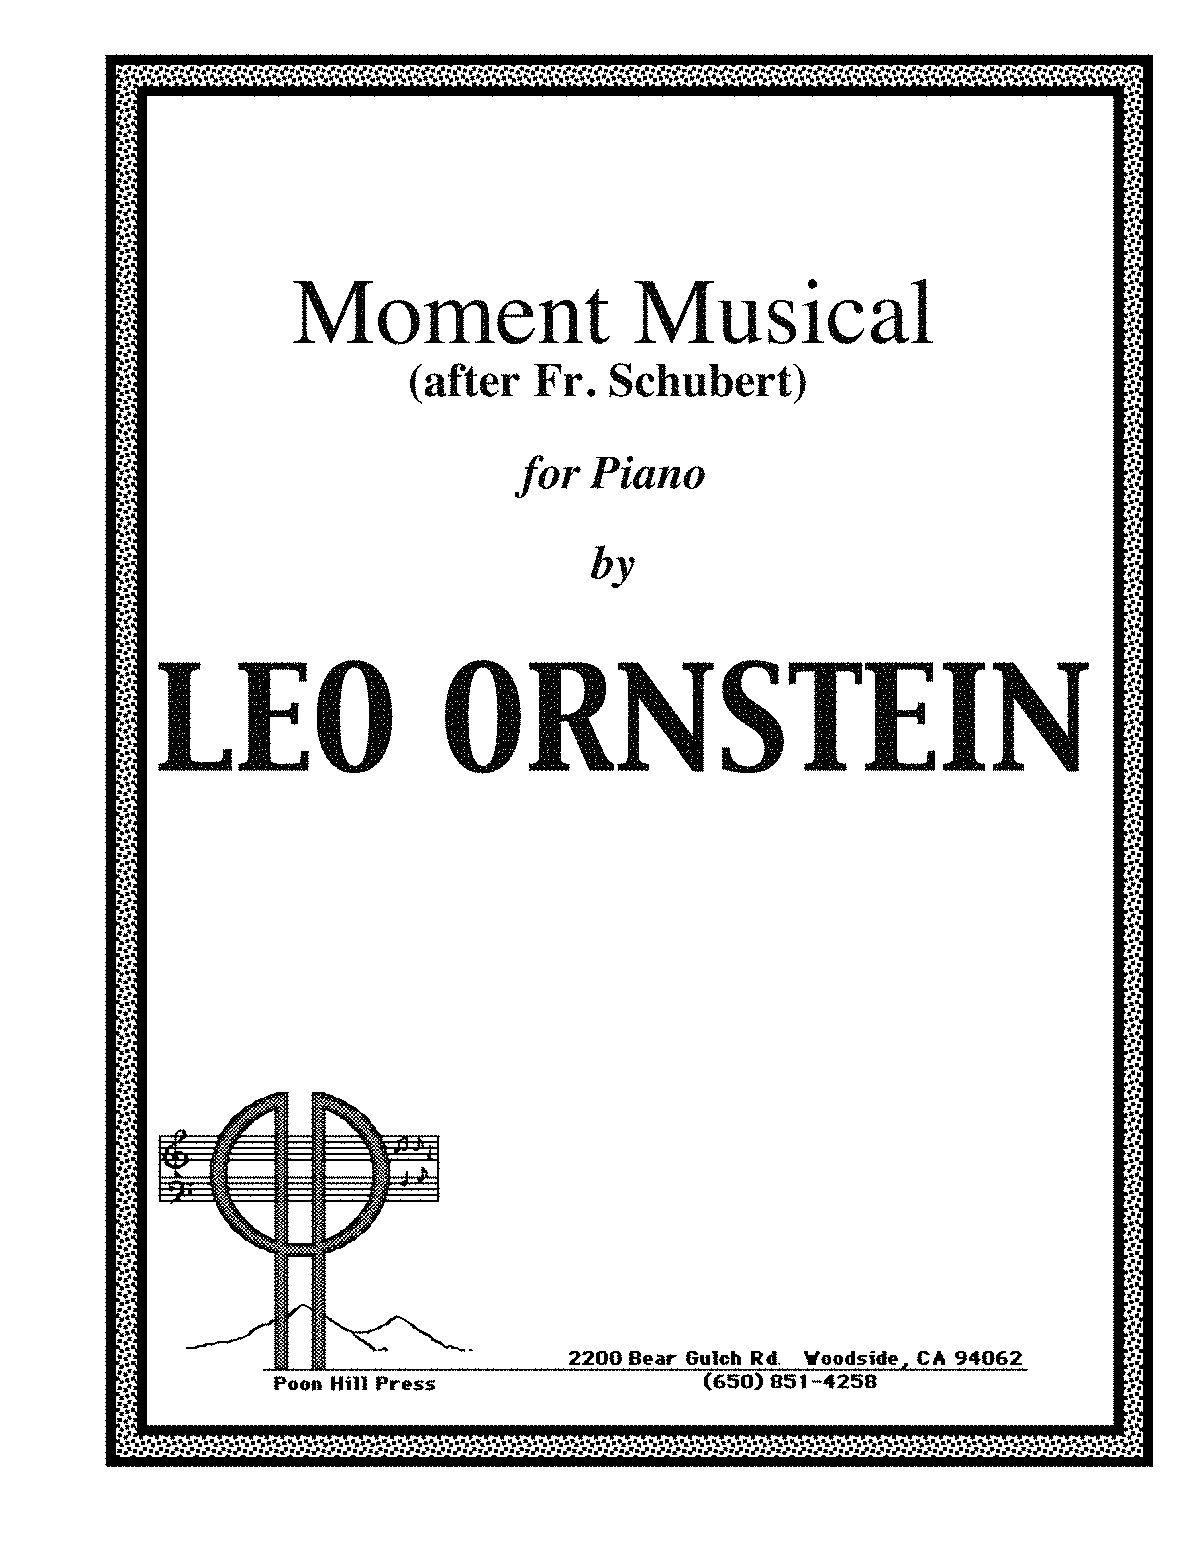 S071a - Moment Musical.pdf